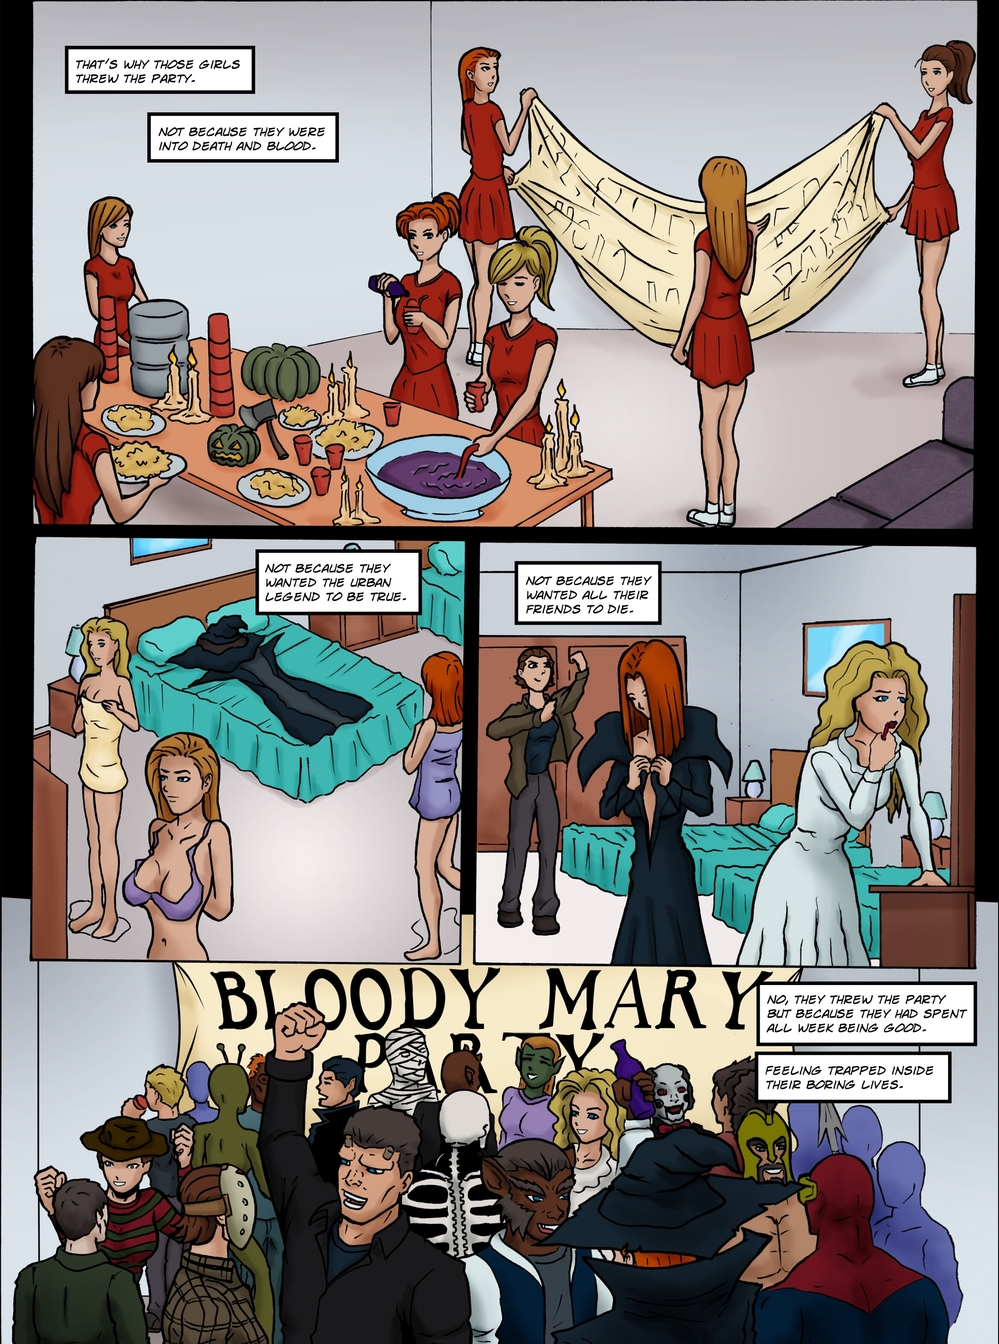 BLOODY MARY page 2 -- story 25 in The Book of Lies